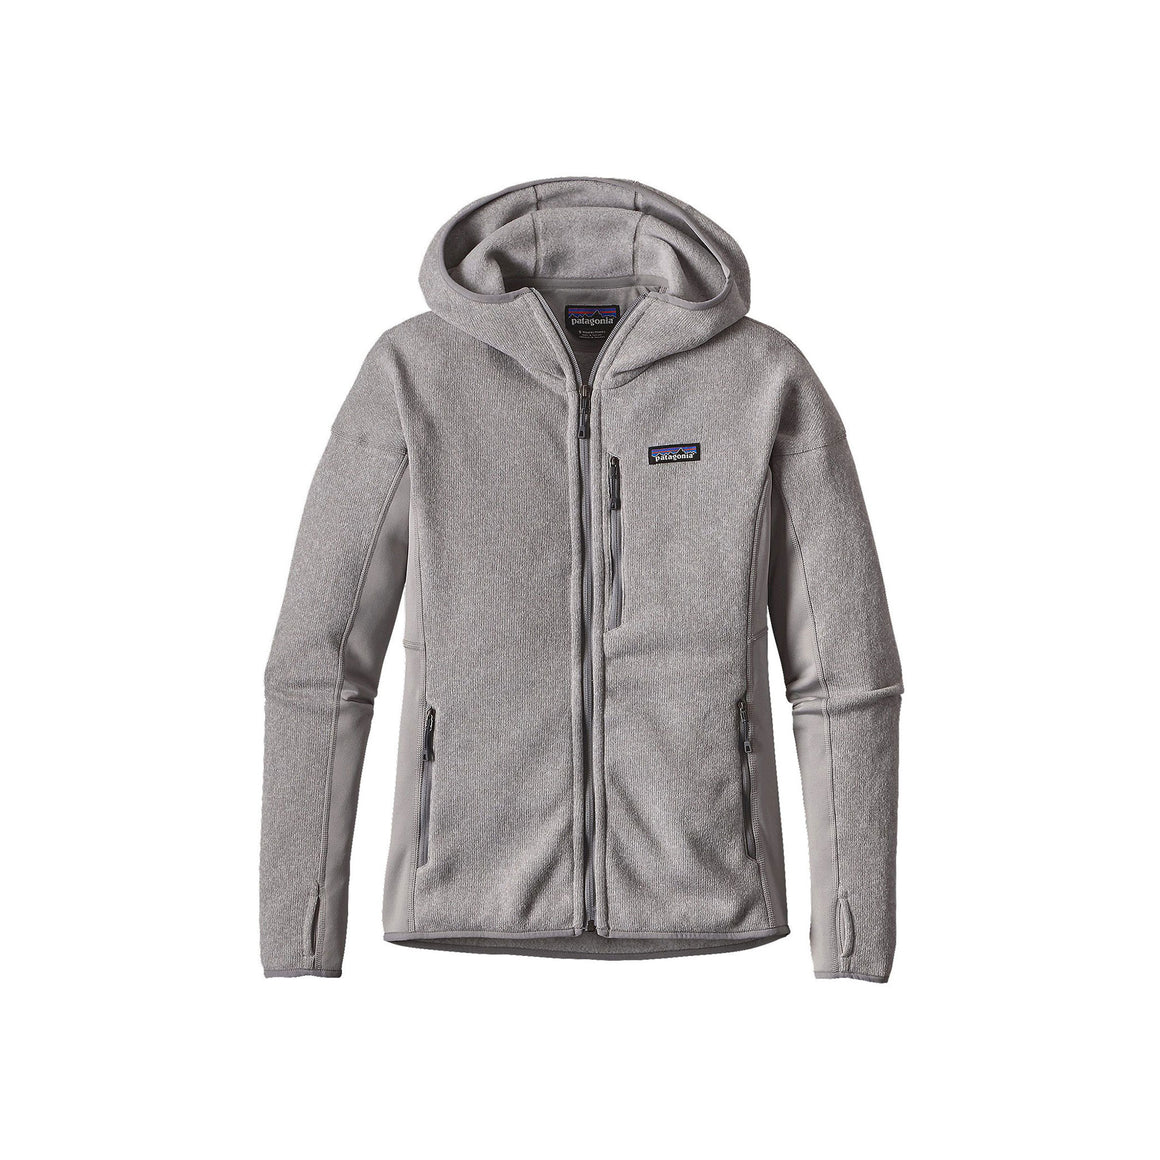 Patagonia Performance Better Sweater Hoody - Women's - Clearance